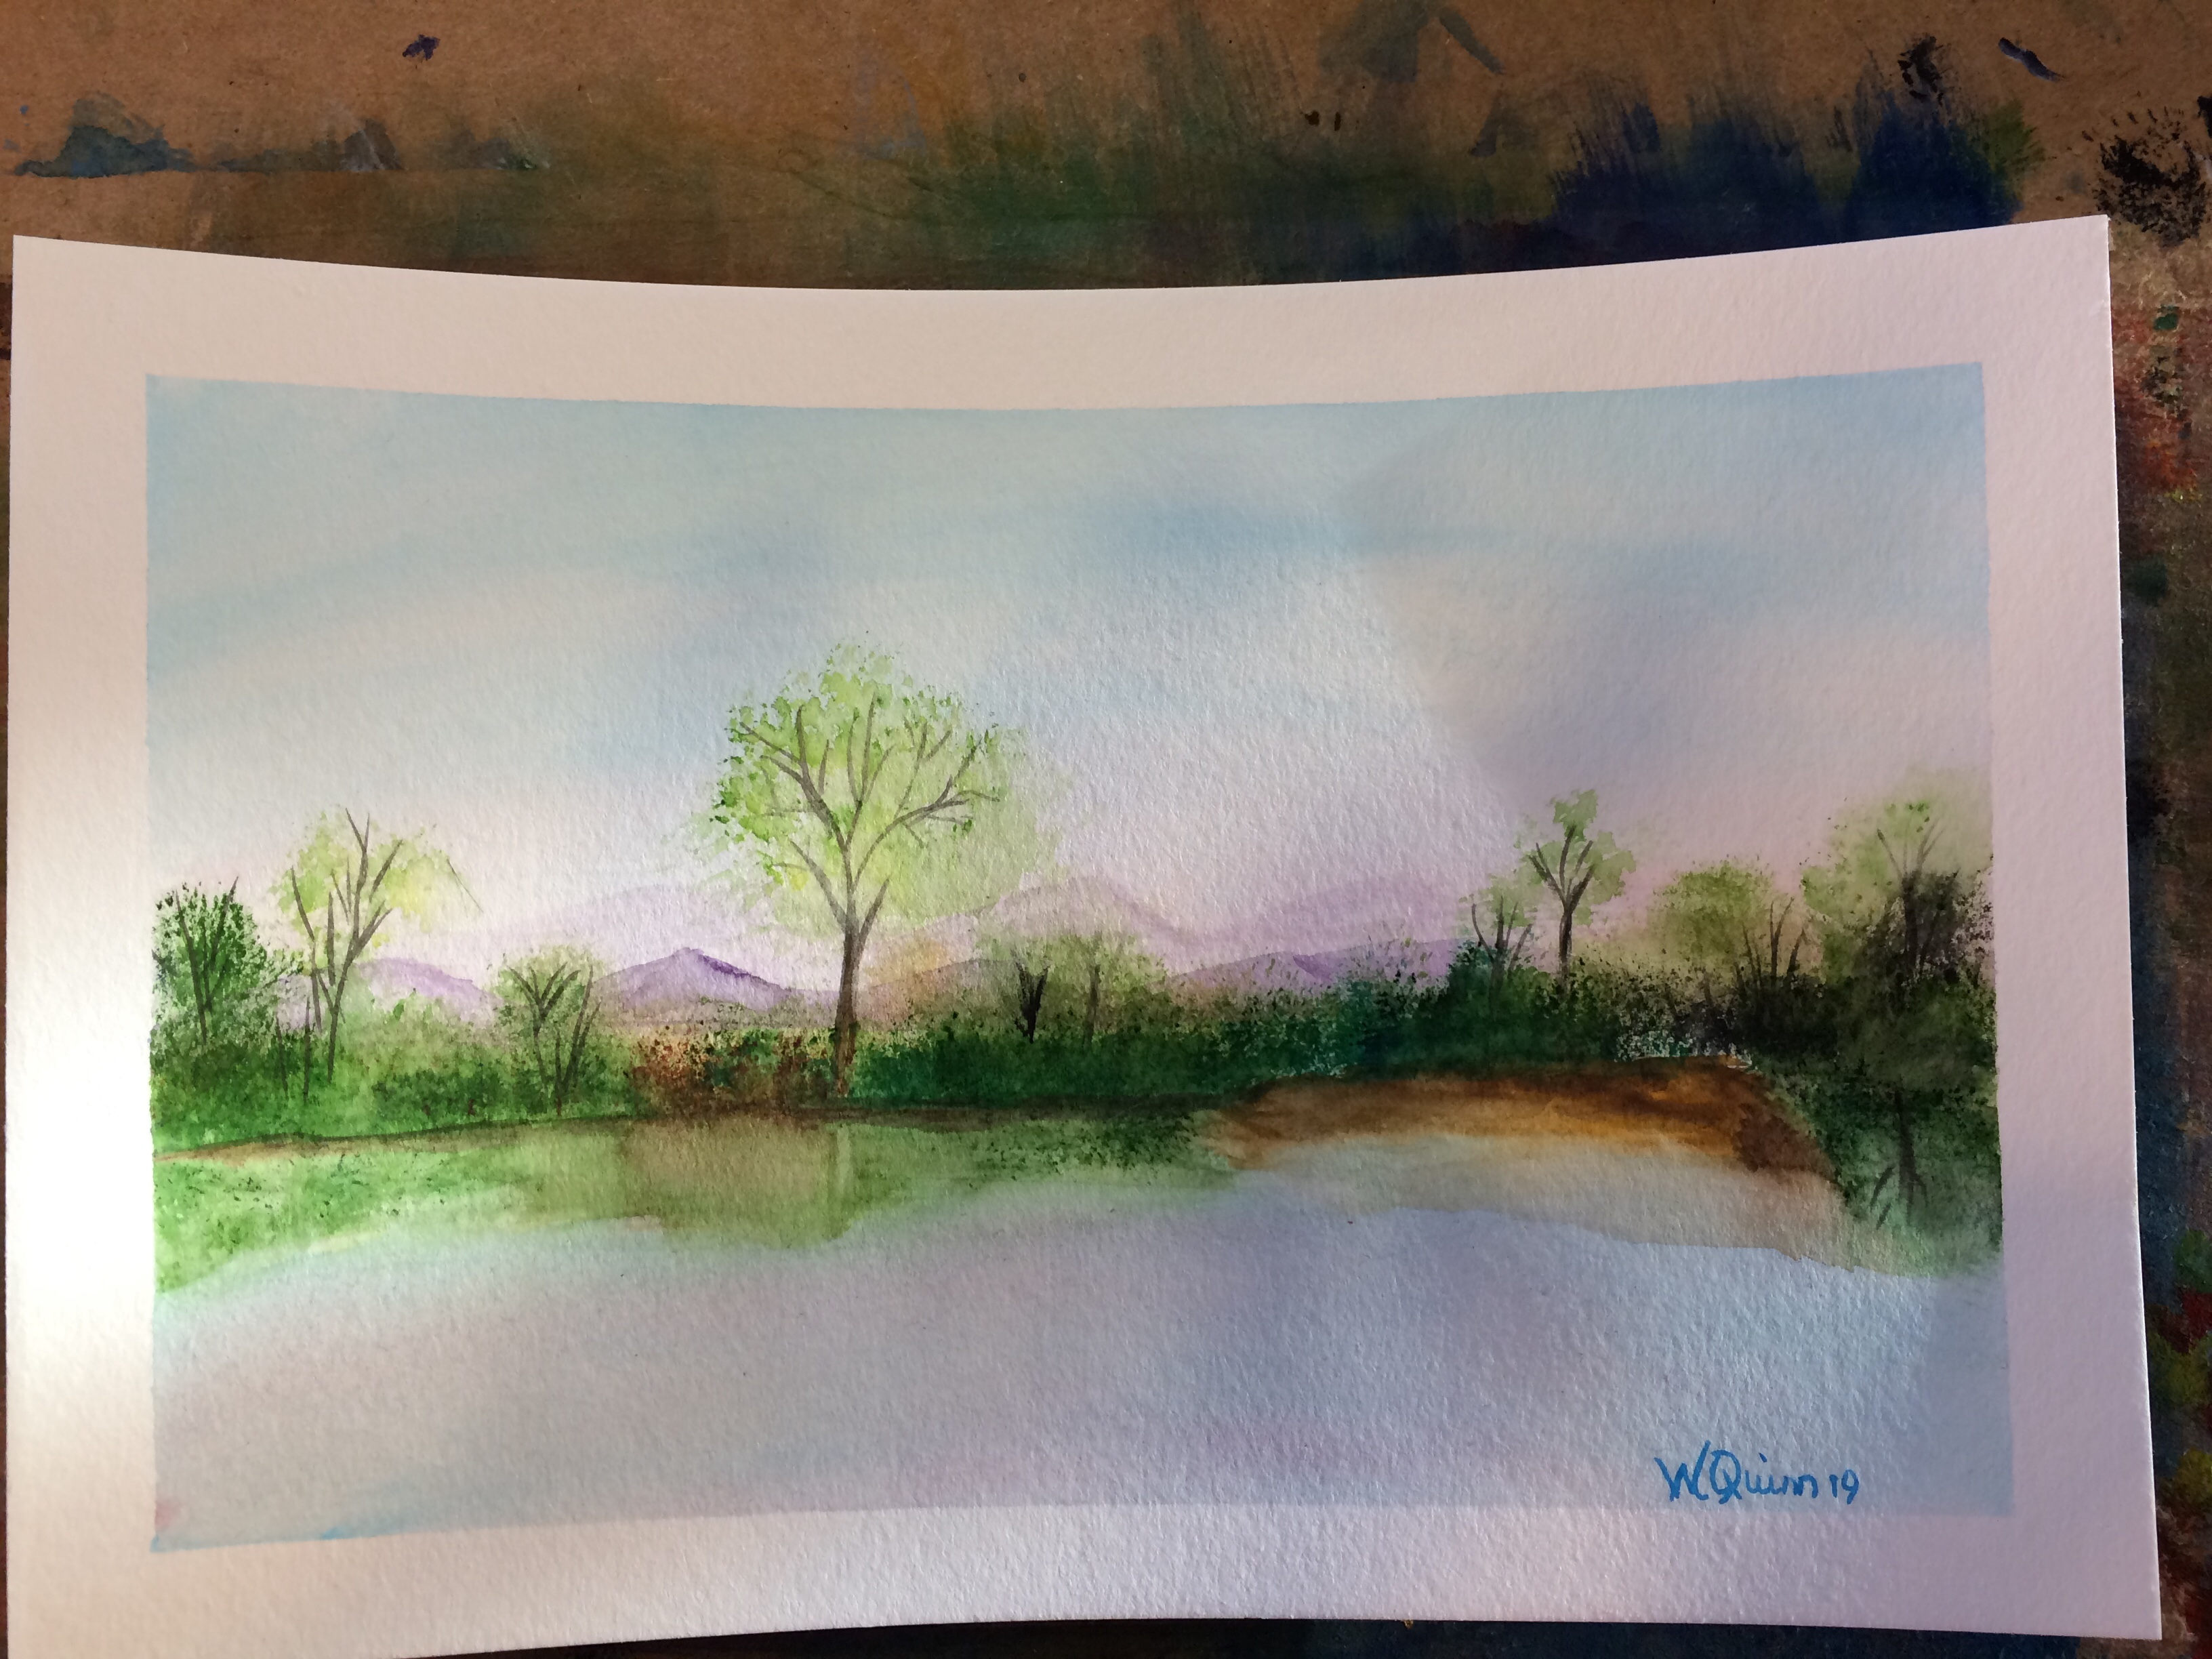 watercolour painting landscape blue sky, purple mountains in distance with bush and trees in forefront reflected in water.